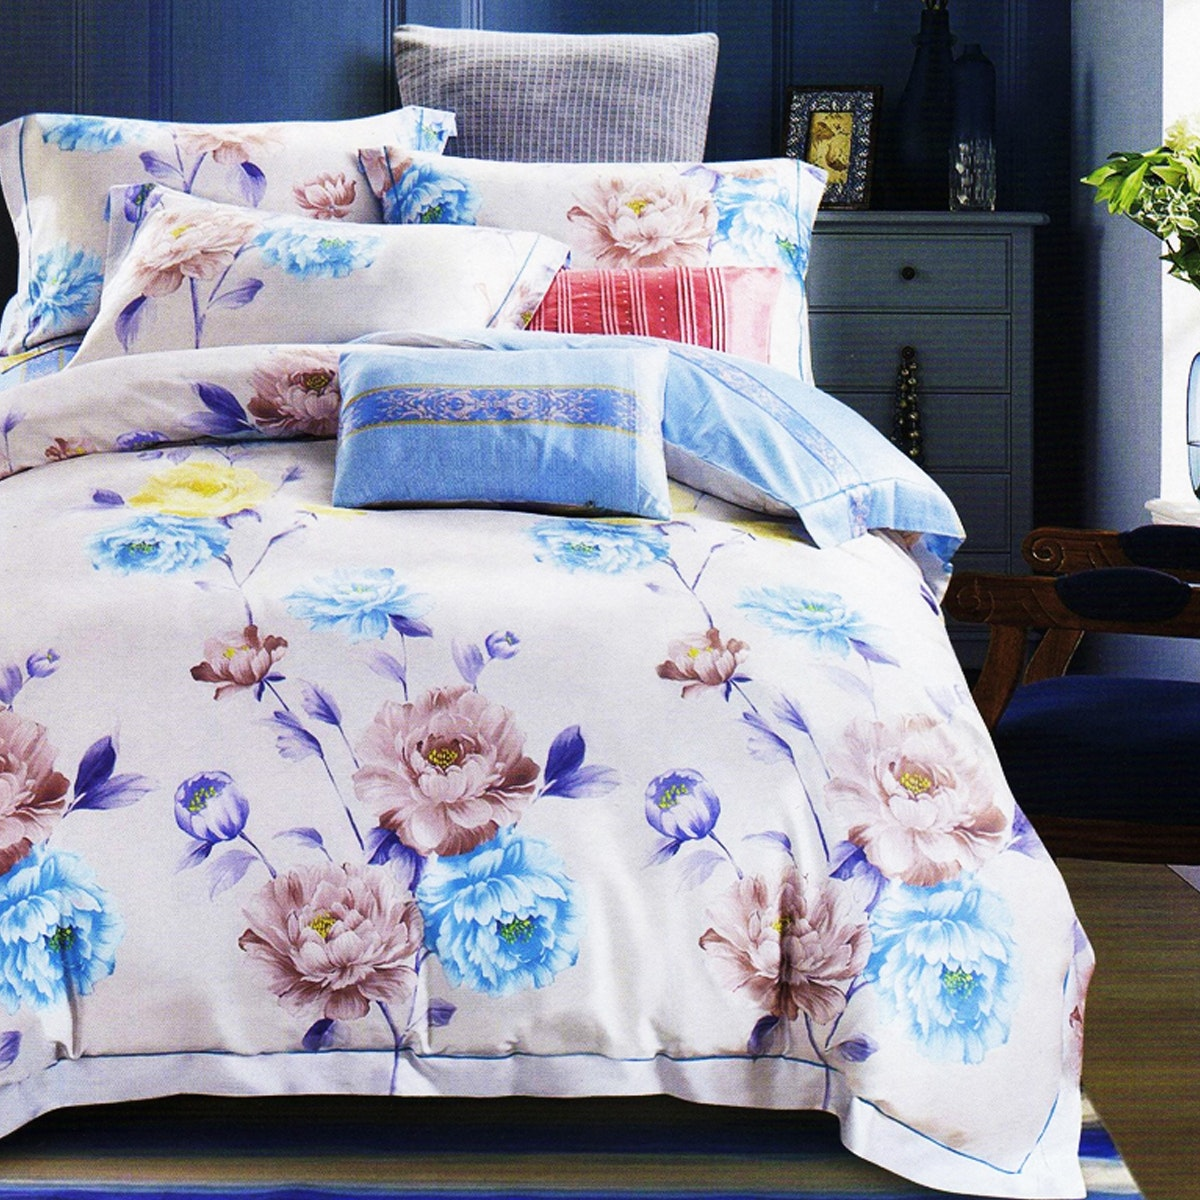 Sleep Buddy Set Sprei Blue Floral Line Cotton sateen 160x200x30